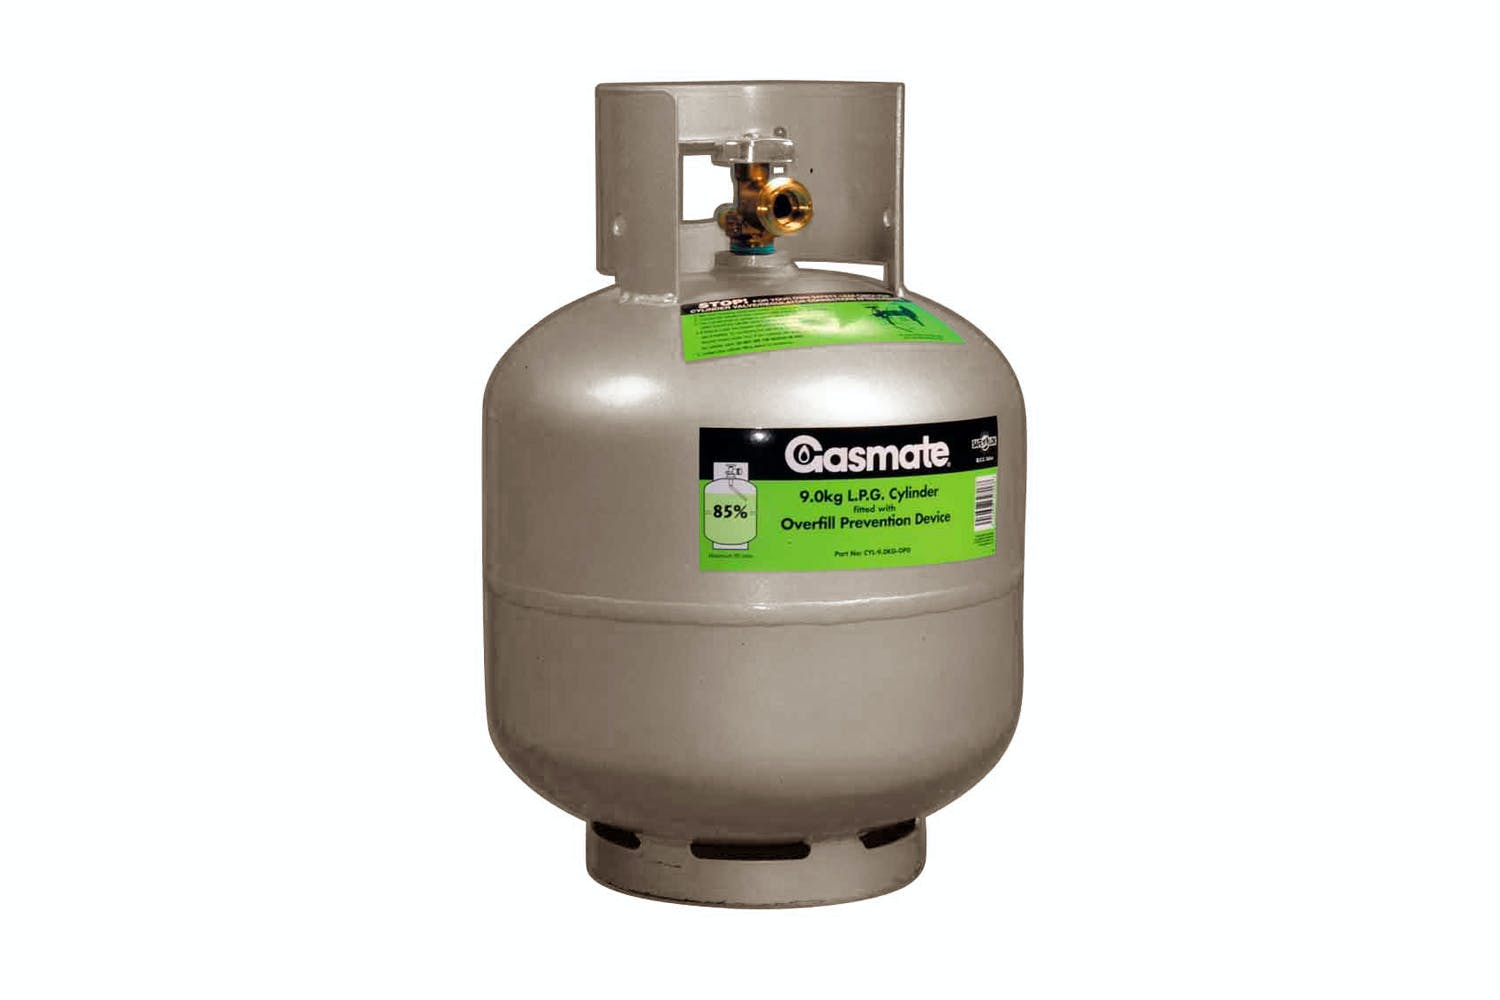 gasmate 9kg lpg gas cylinder harvey norman new zealand. Black Bedroom Furniture Sets. Home Design Ideas